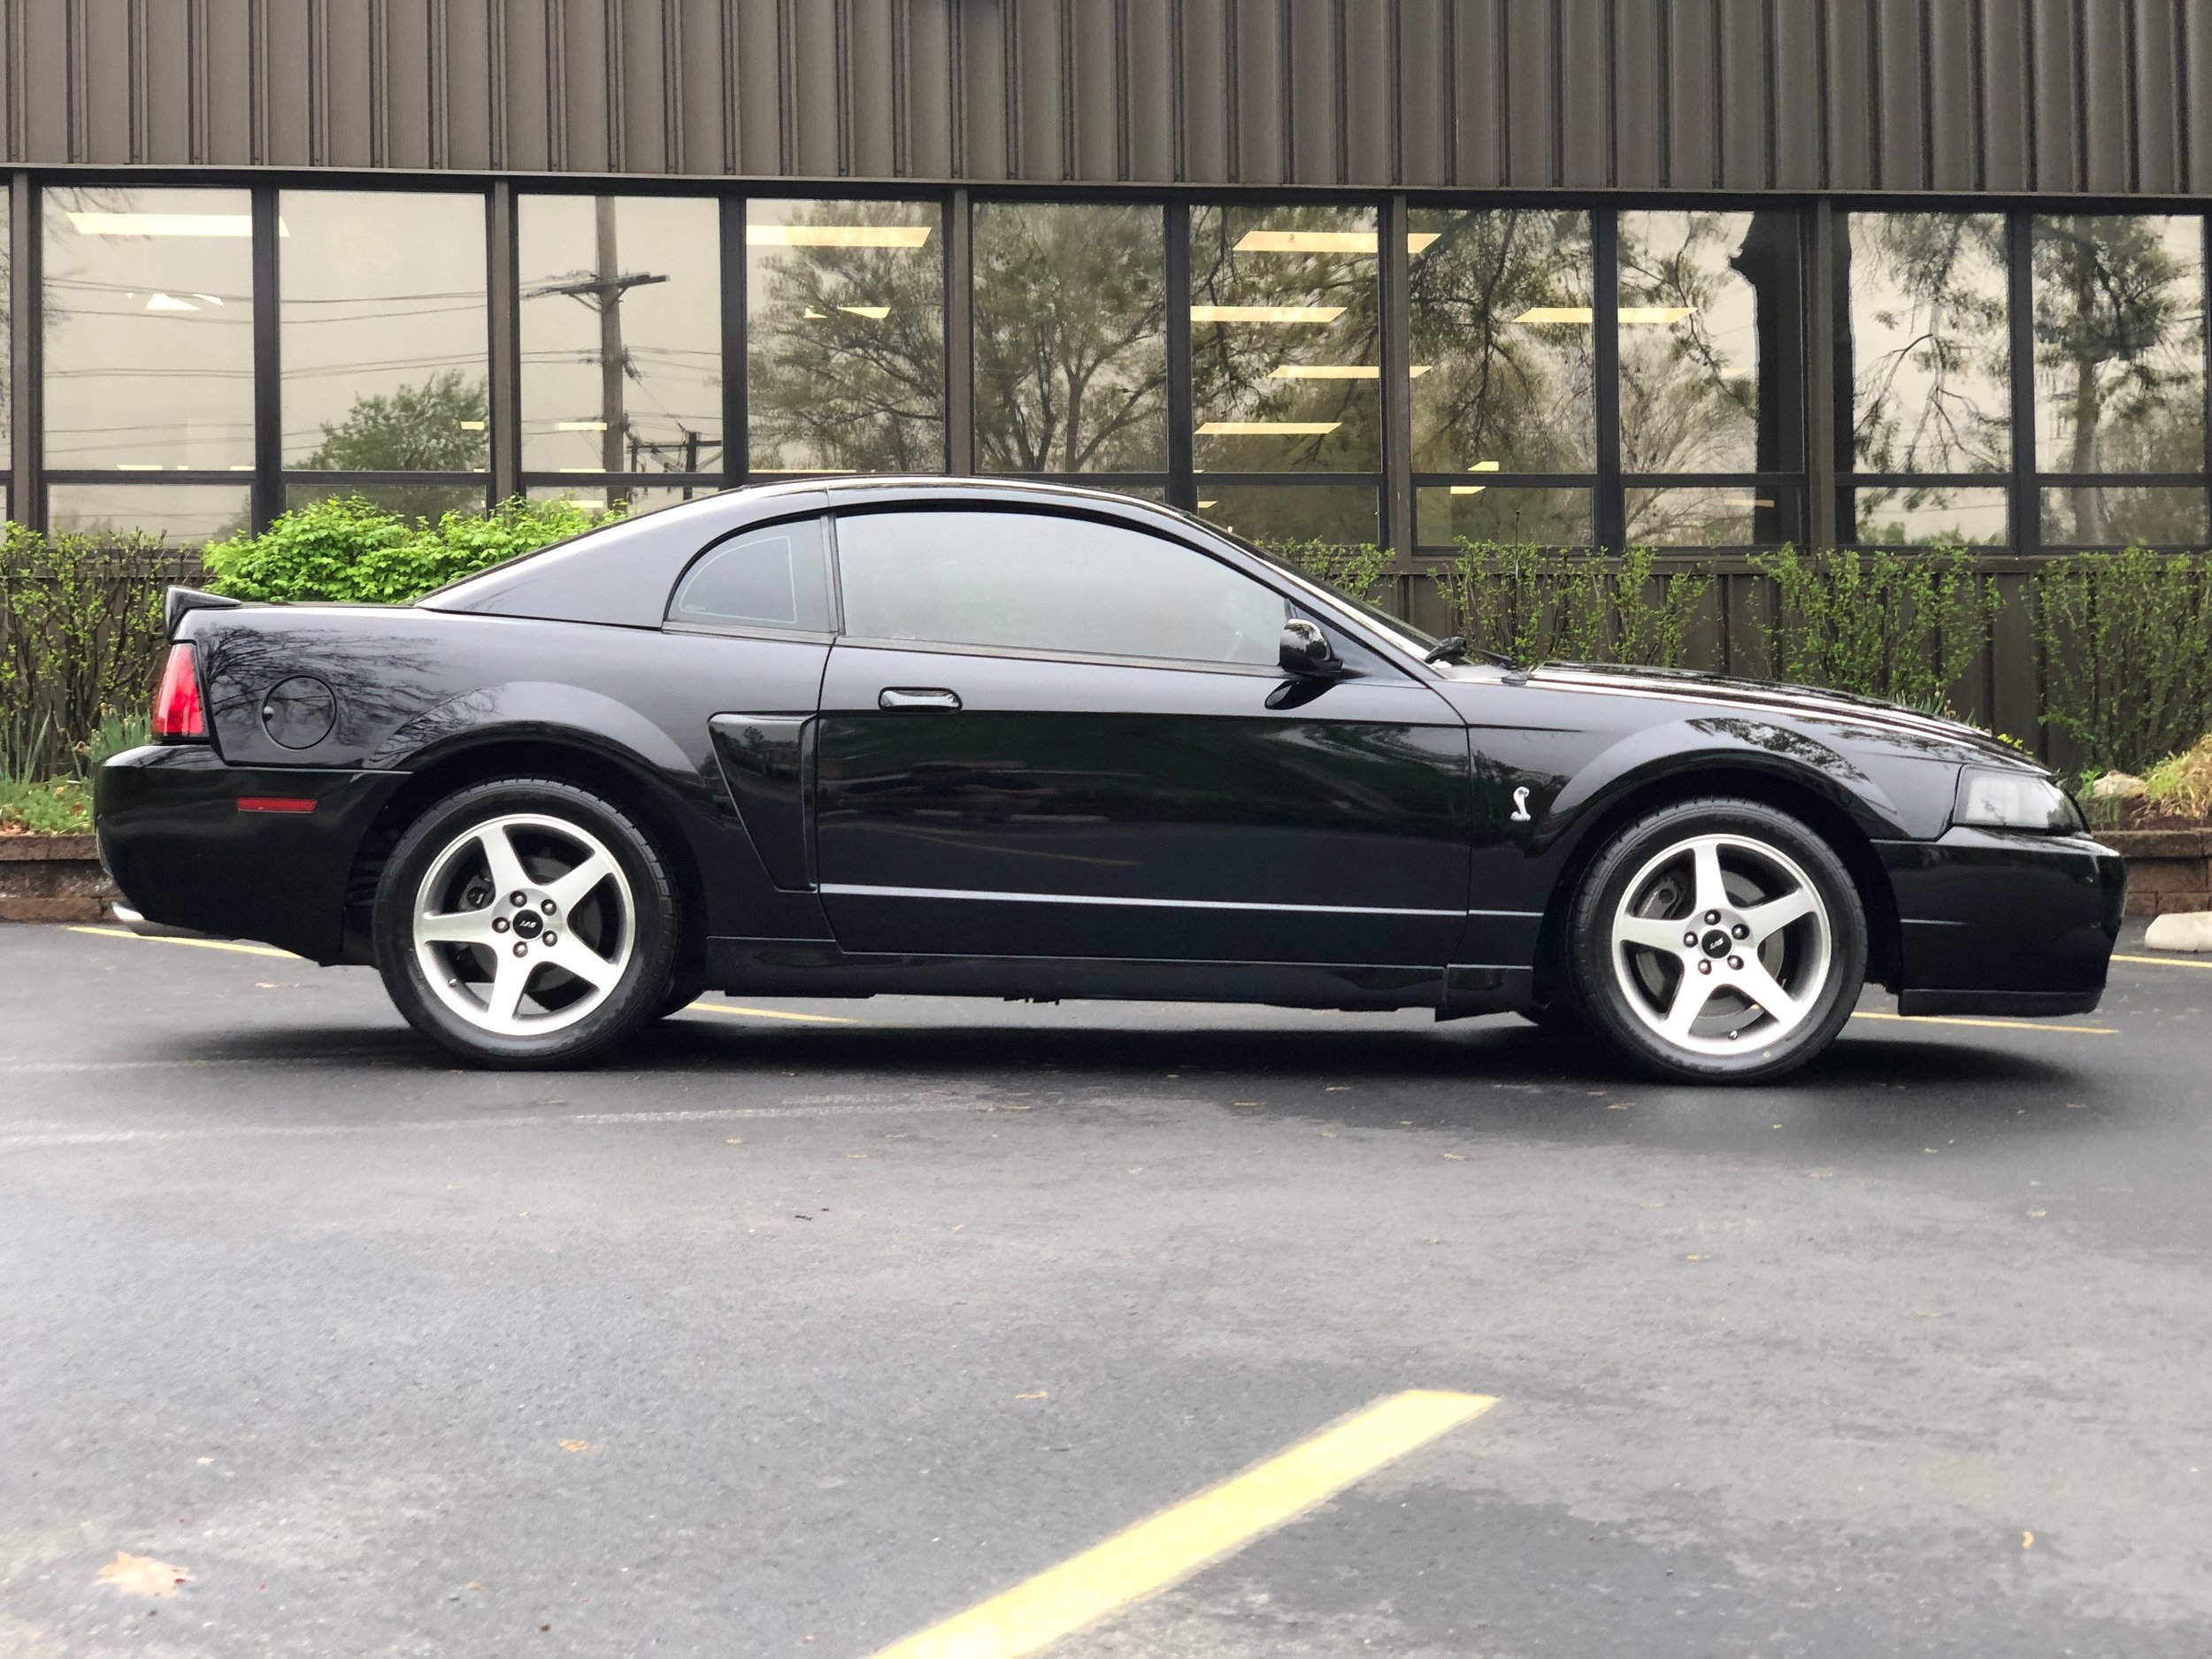 2003 Ford Mustang Svt Cobra Car